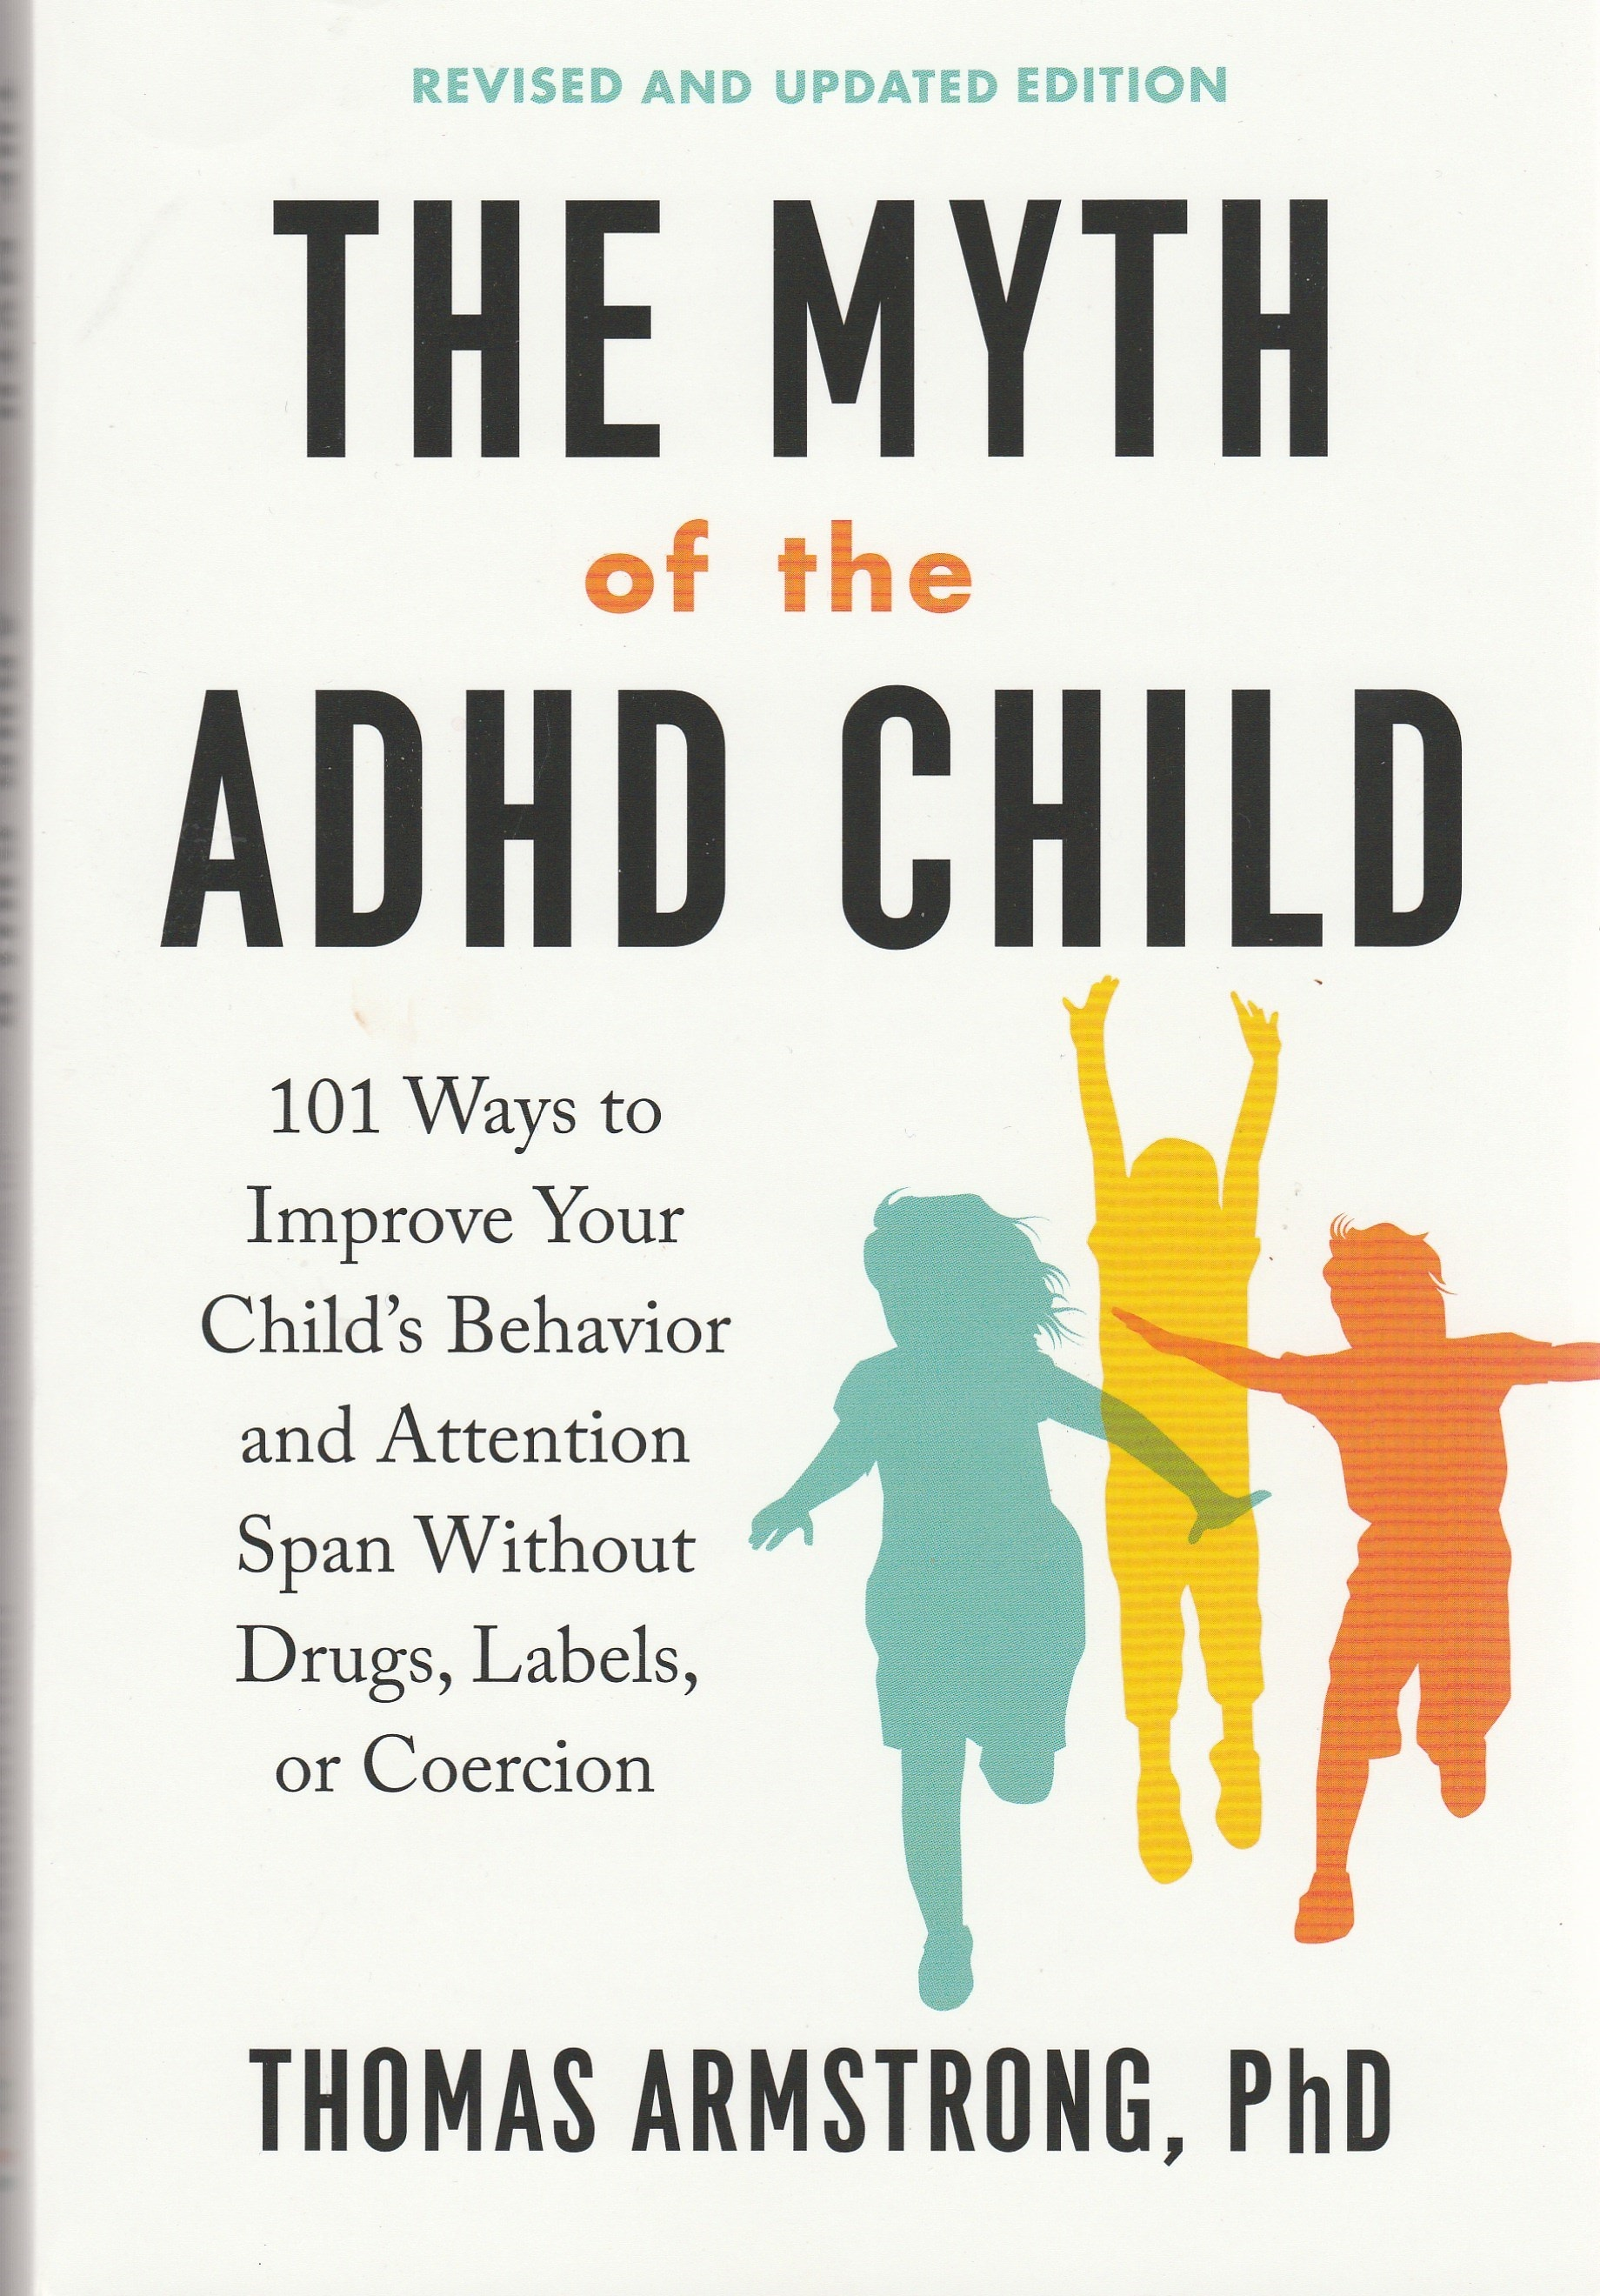 The front cover of the book The Myth of the ADHD Child